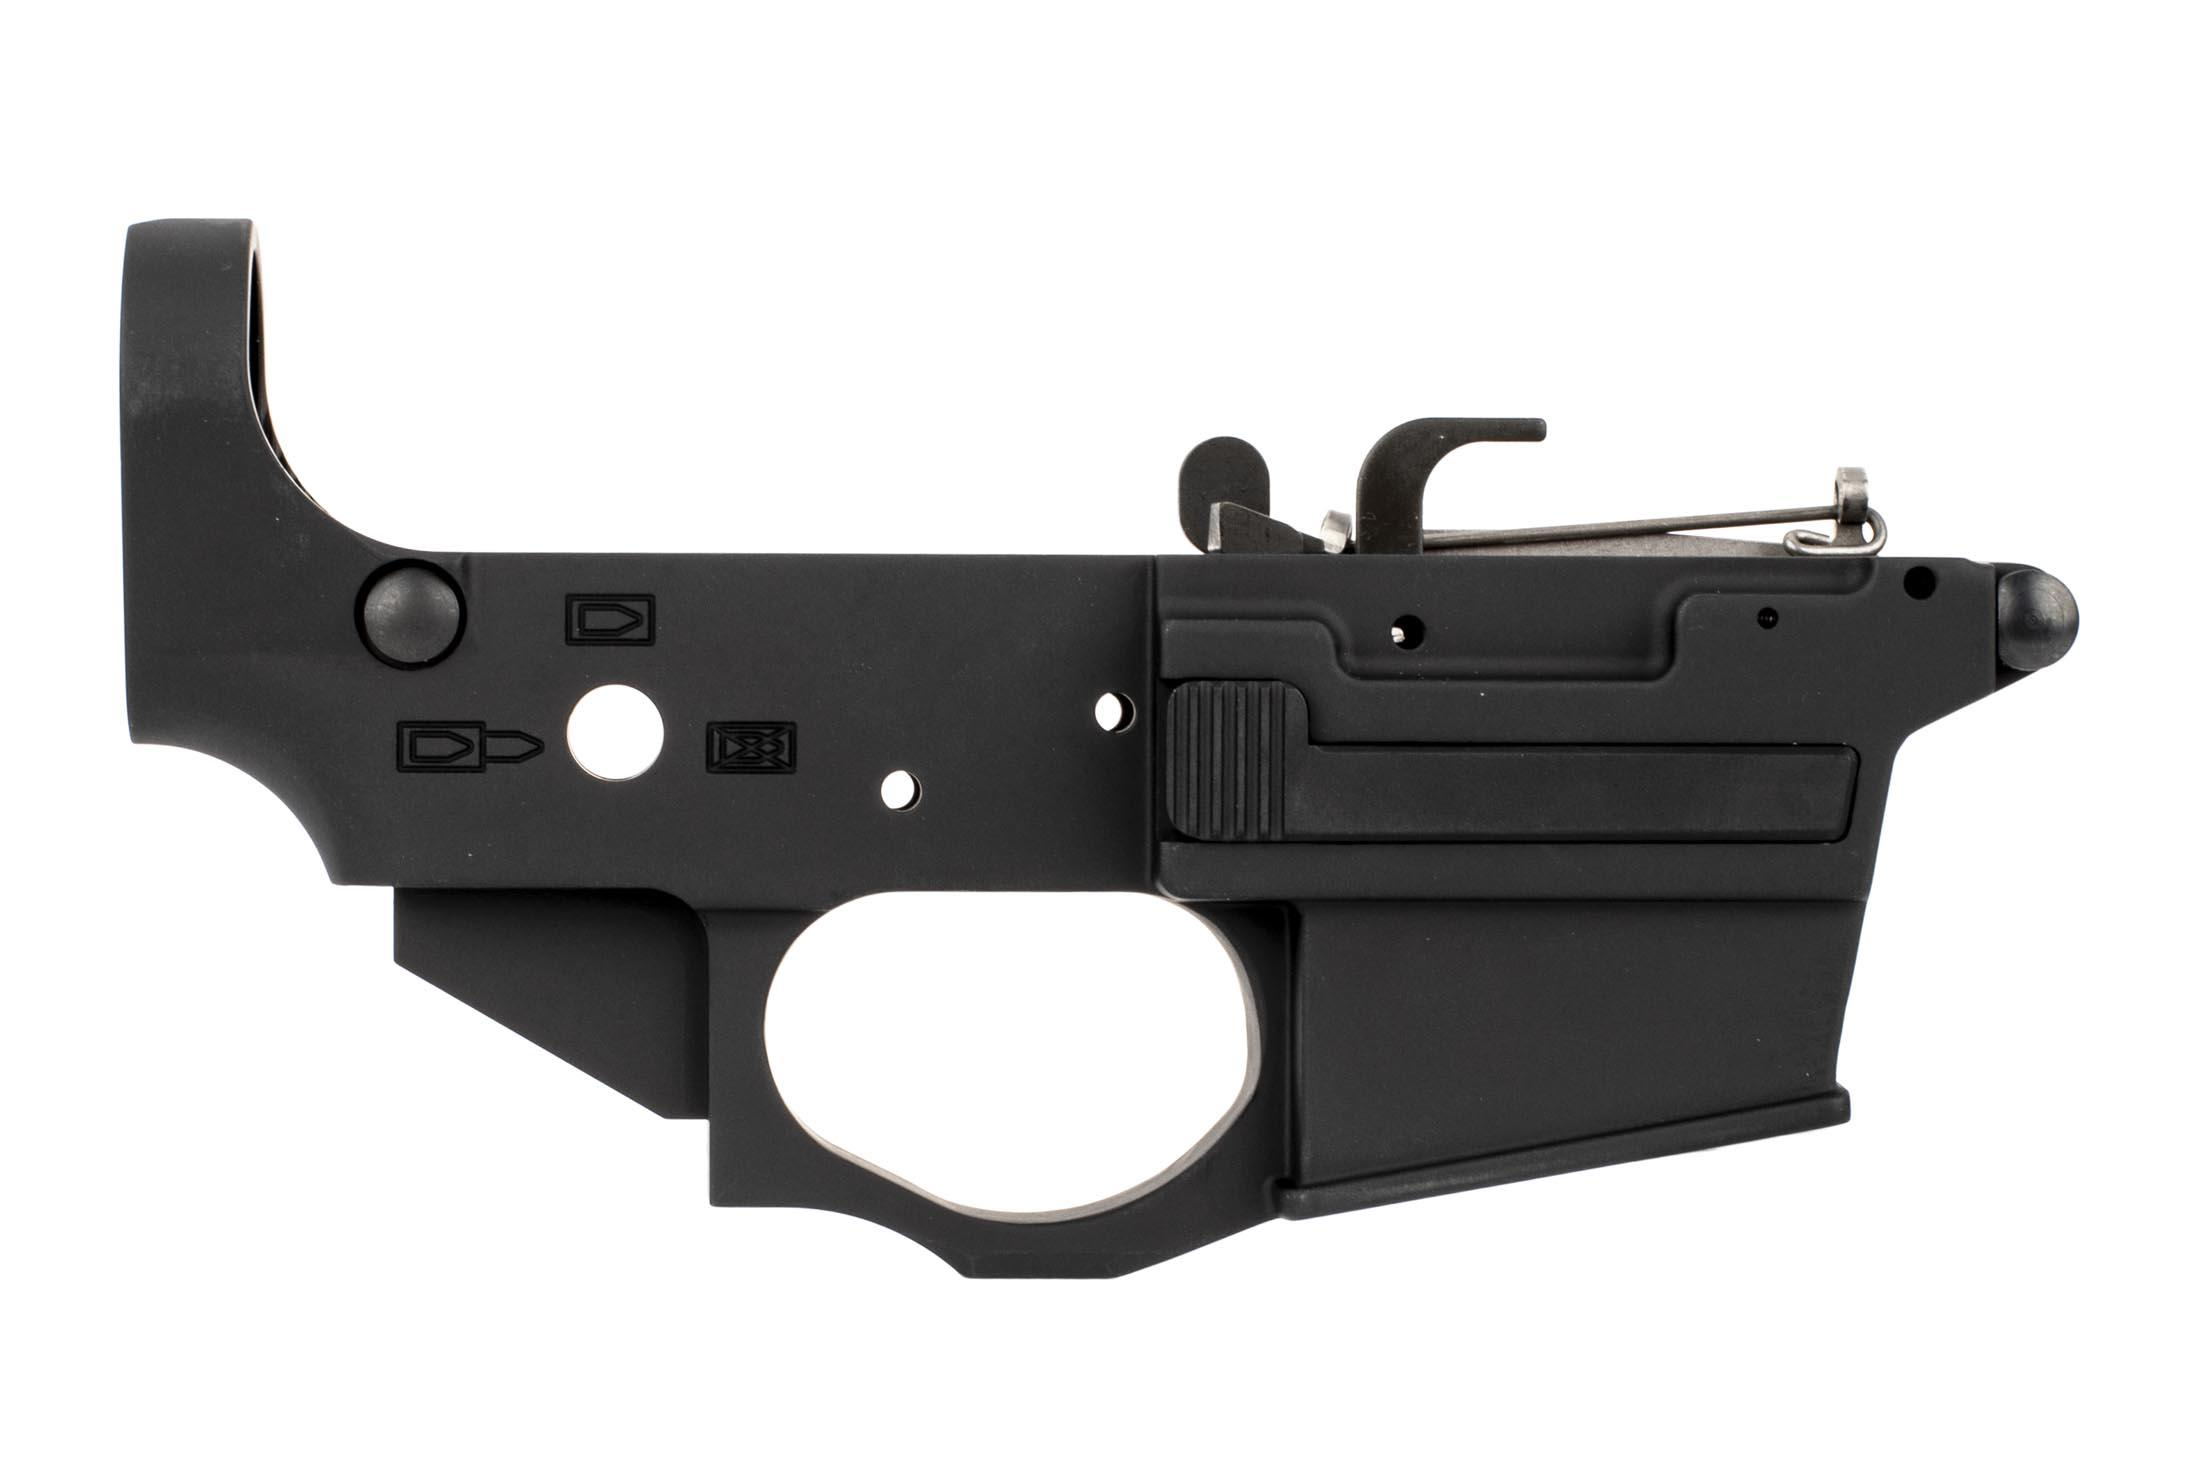 The Spike's Tactical Spider 9mm stripped Lower reciever with billet enlarged trigger guard